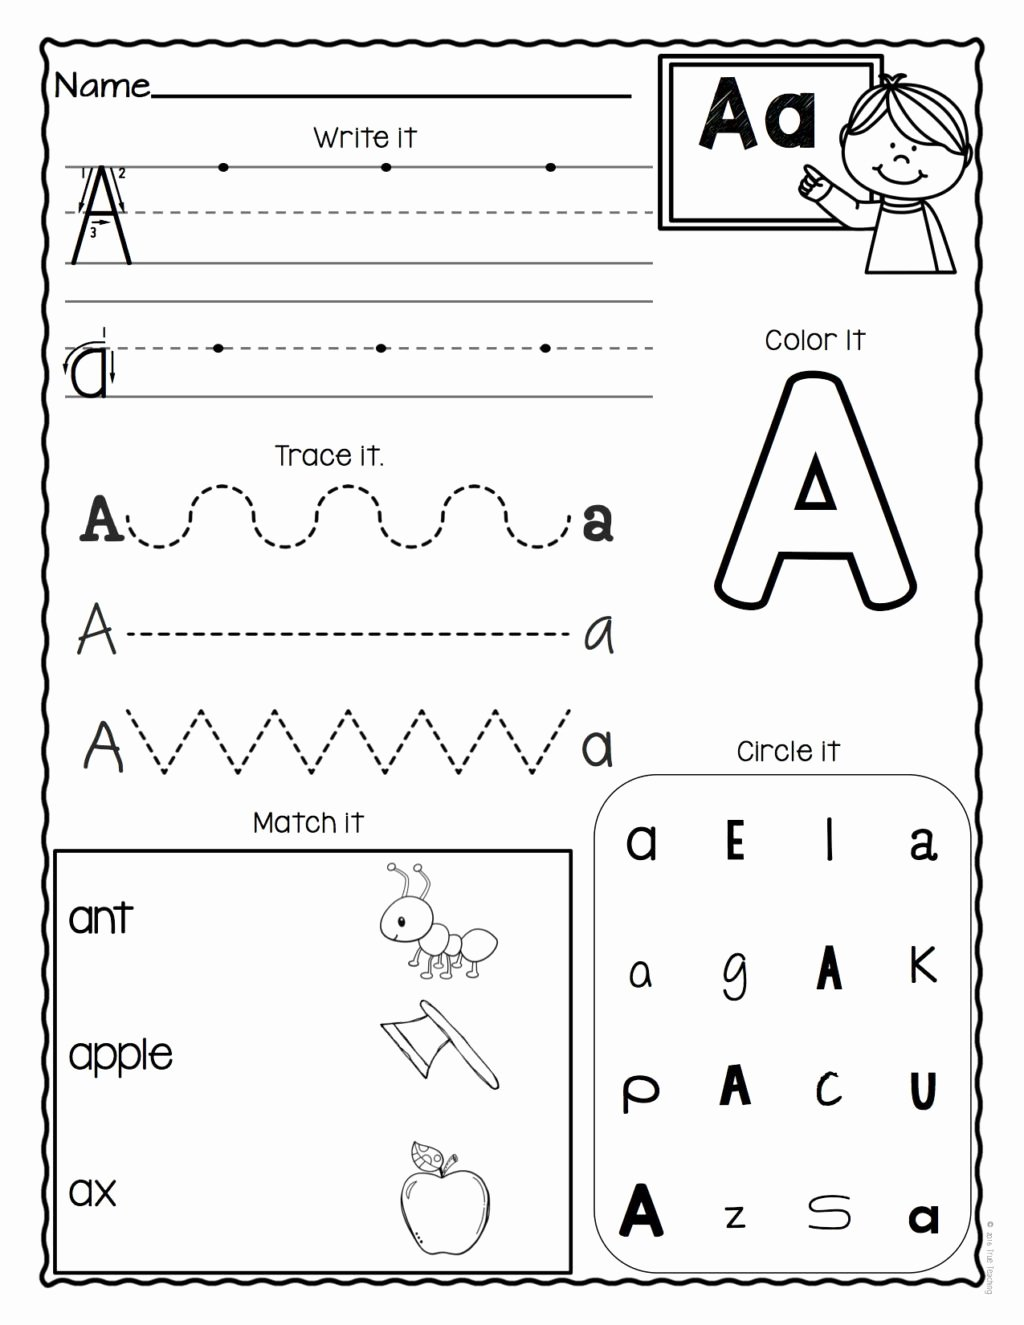 Worksheets for Preschoolers On Letters Inspirational Worksheet Worksheetool Letter Worksheets Z Set for Free